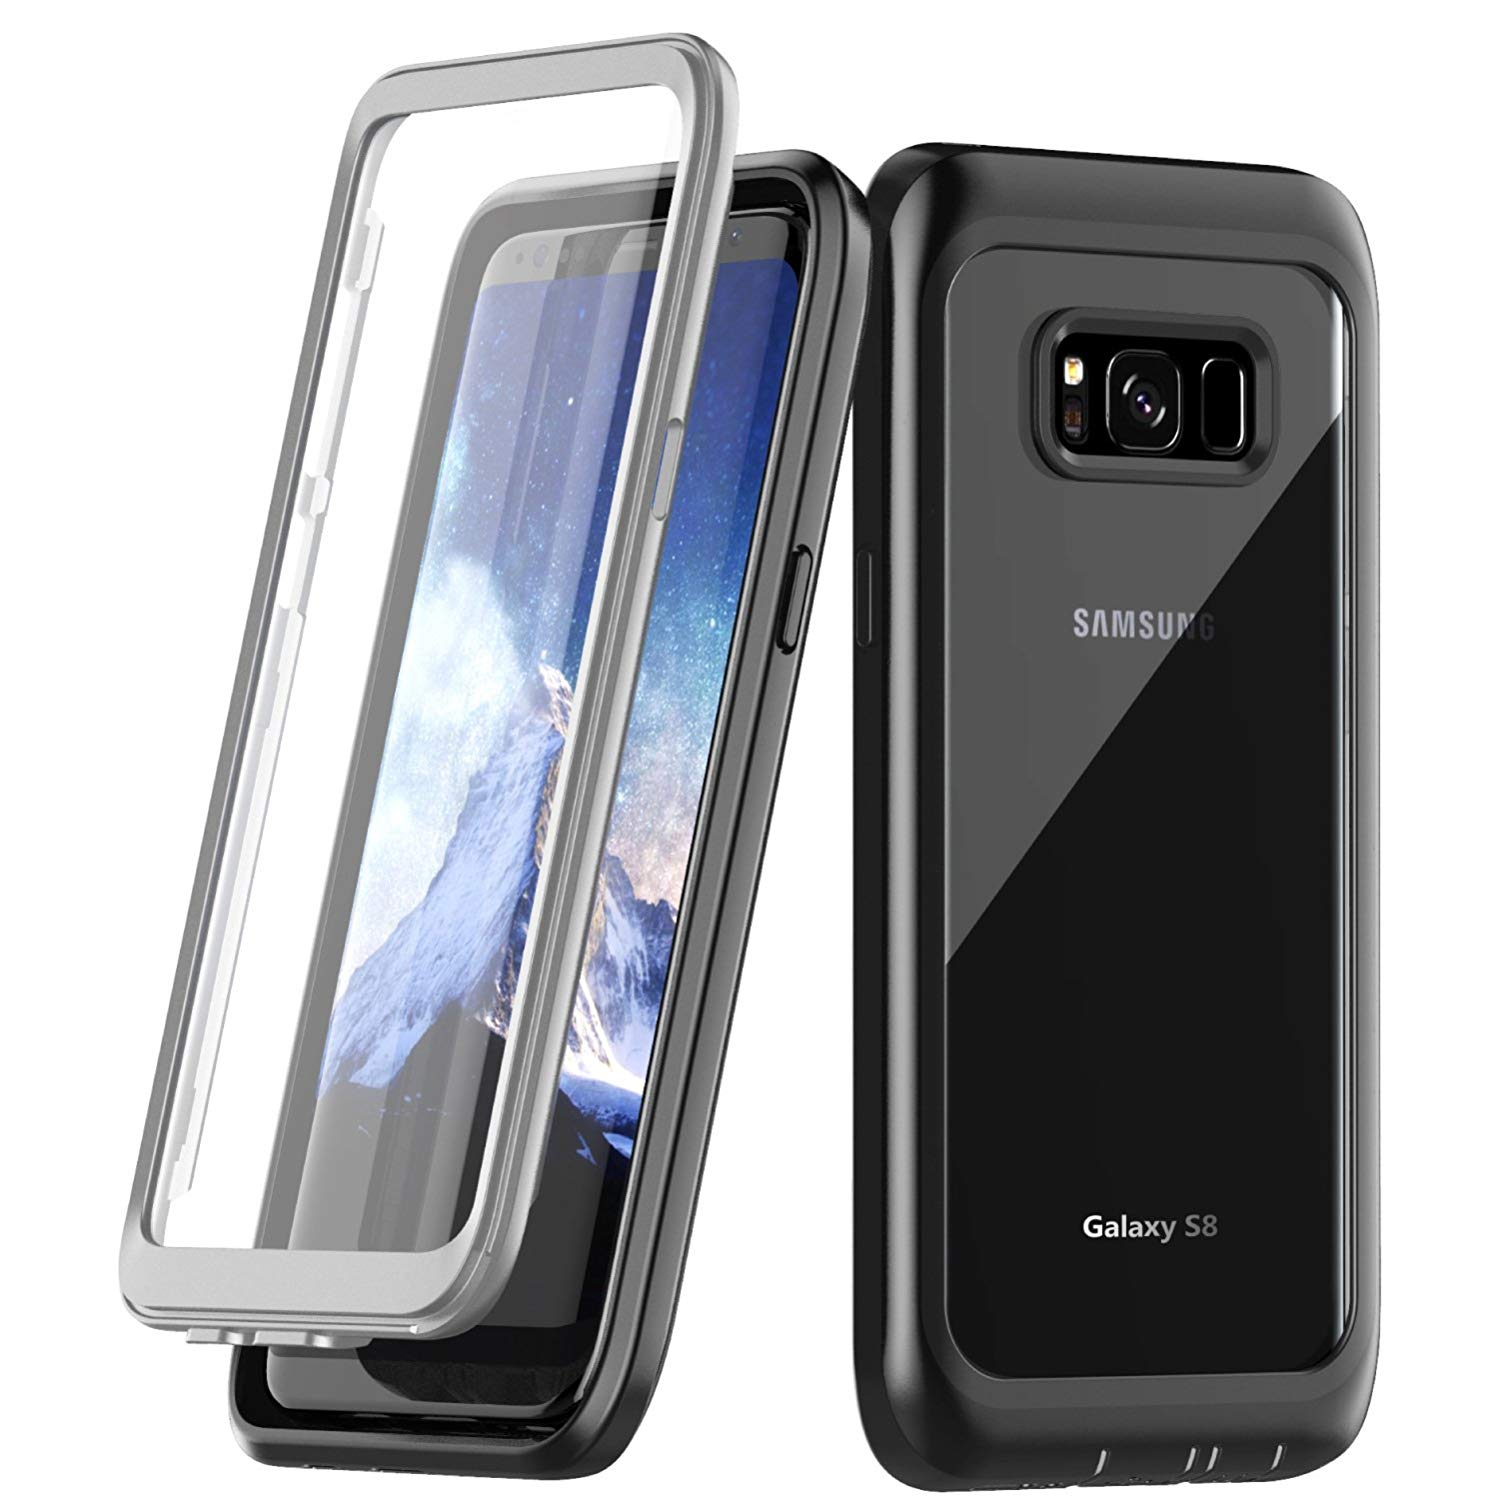 online retailer 1e465 4cbb8 Details about 360 Shockproof Case Built-in Screen Protector For Samsung  Galaxy S8